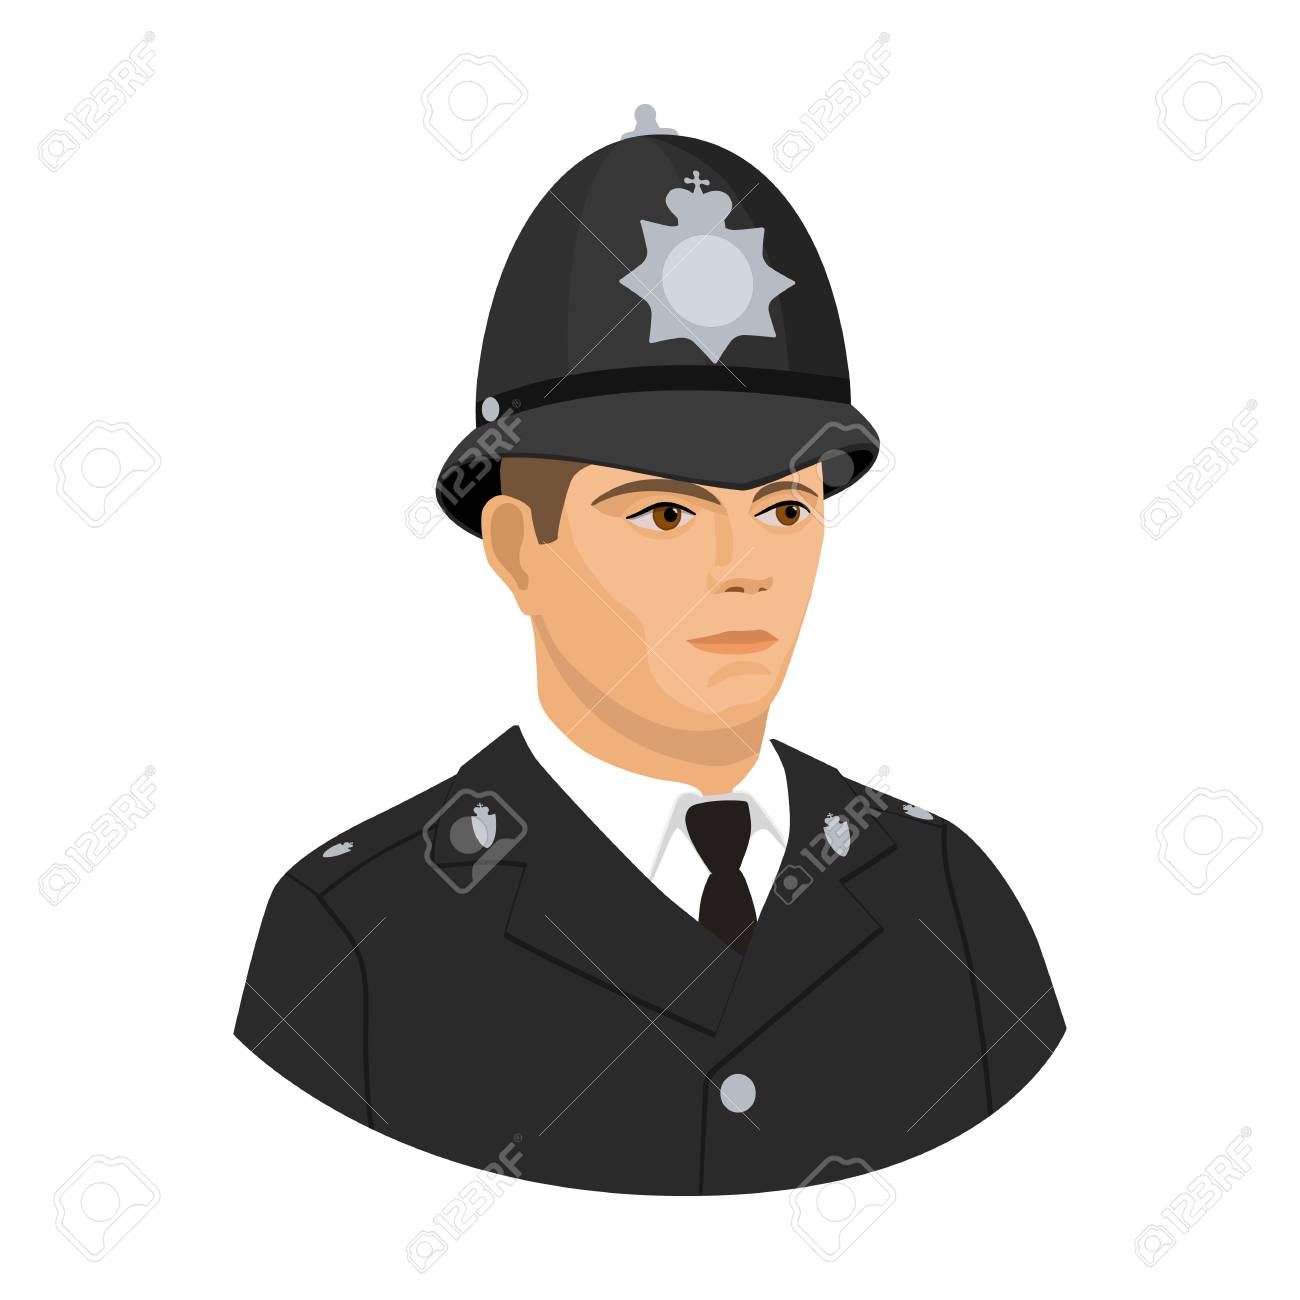 English Policeman Icon In Cartoon Style Isolated On White 1300x1300